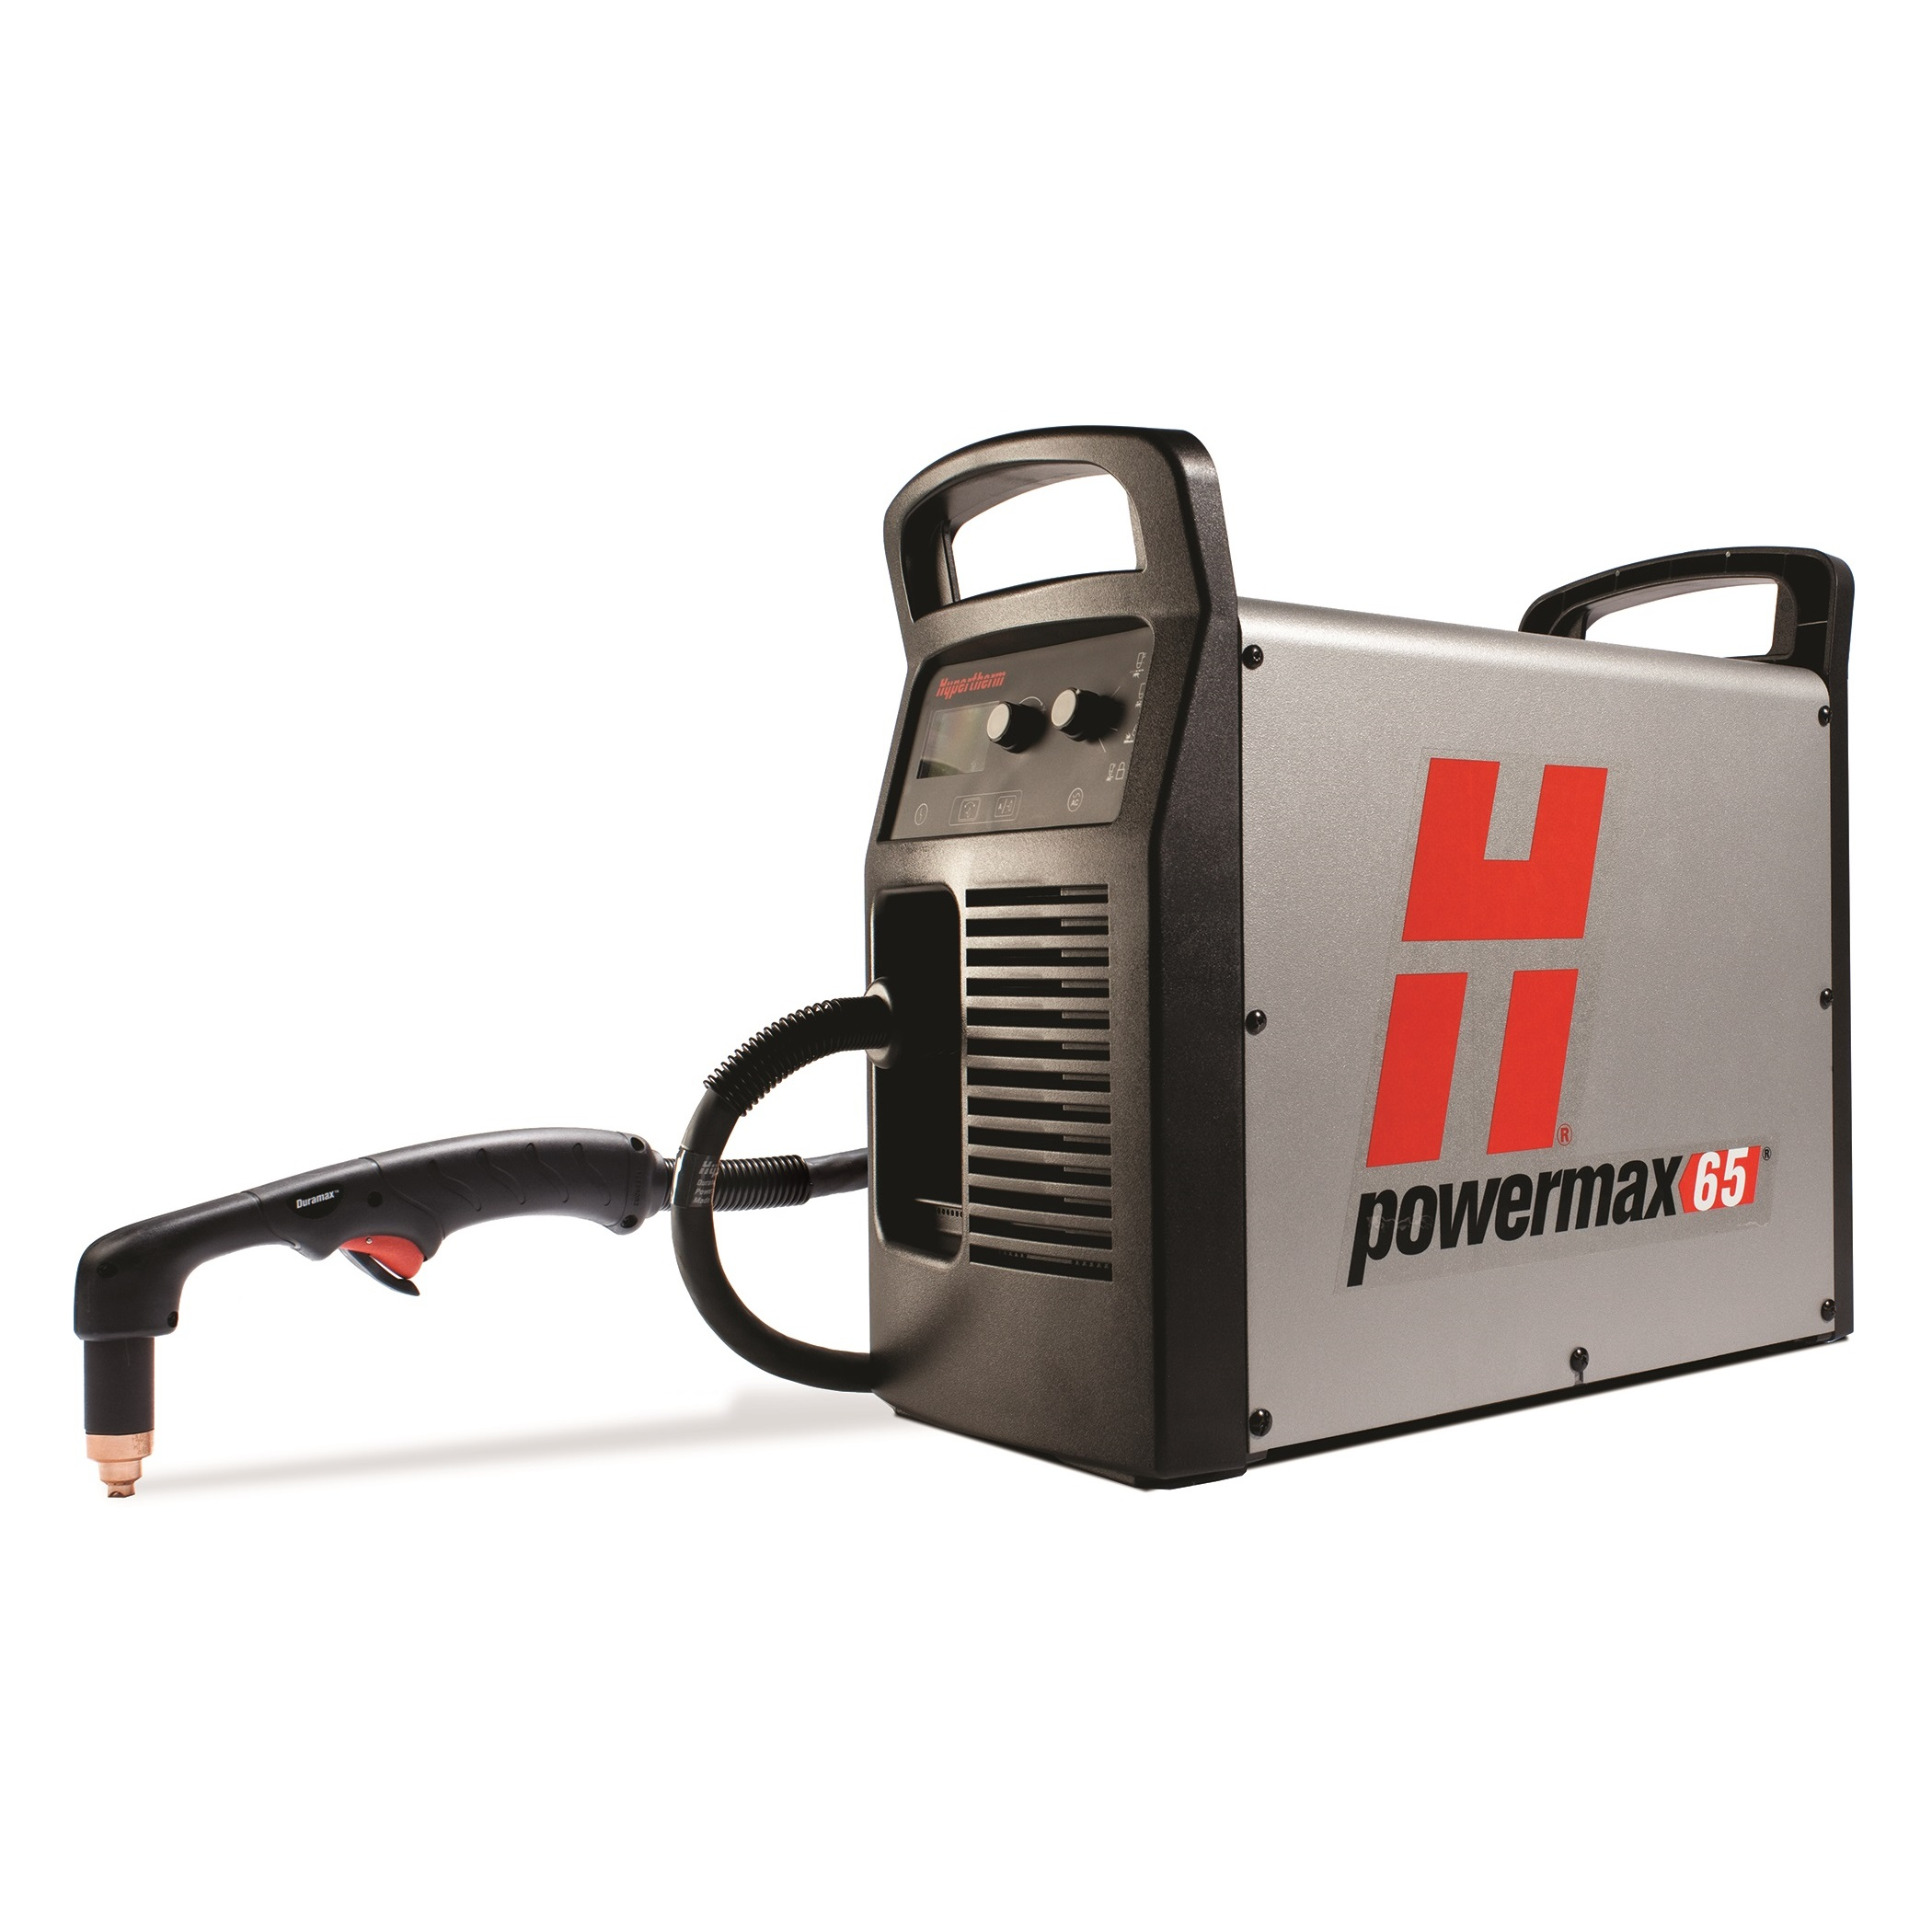 Hypertherm Powermax 65 Handheld Plasma Cutter with 25 Foot Hand Torch 083270